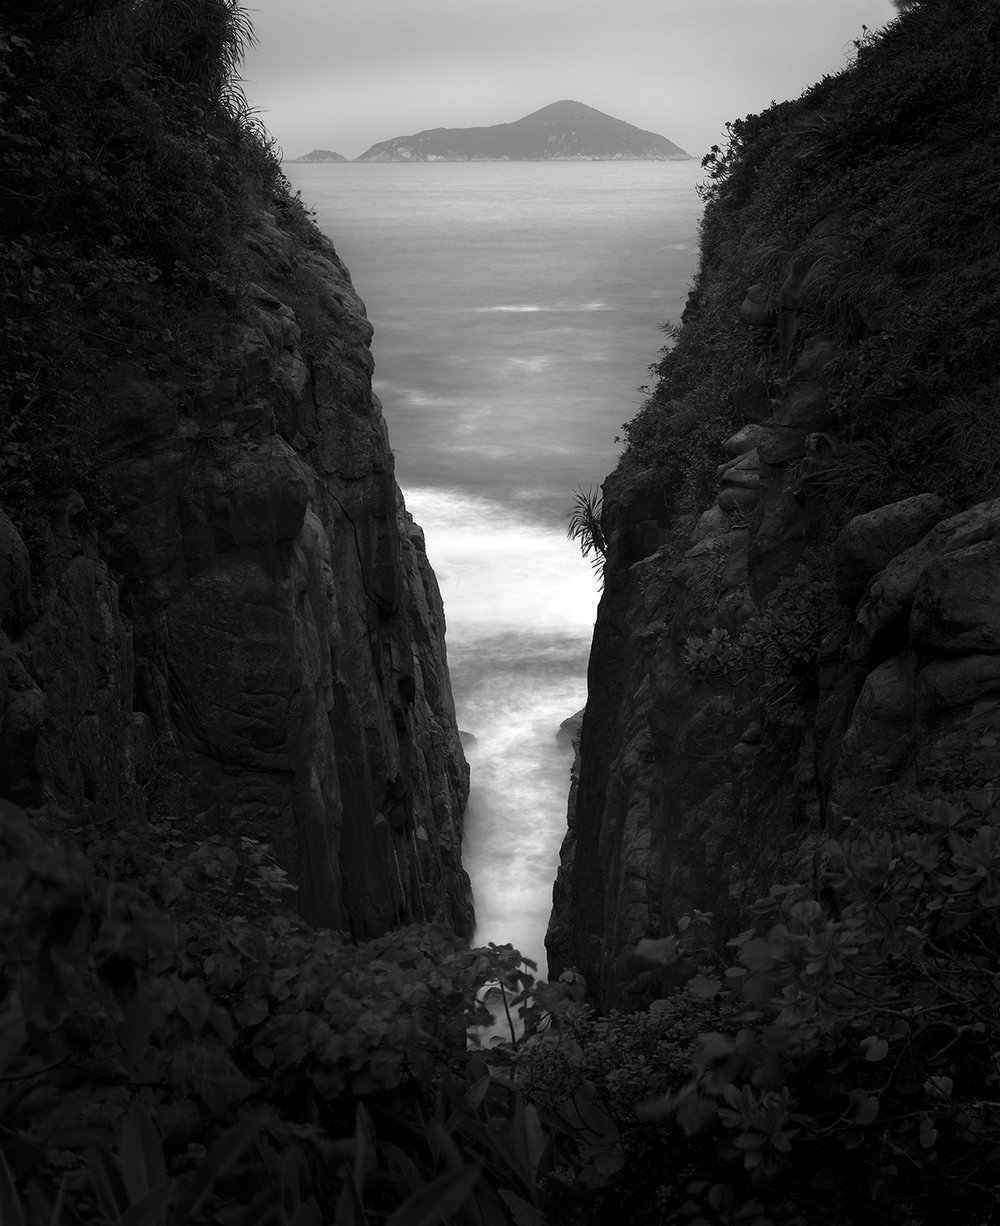 Headlands and Island, Hong Kong - 2007.jpg